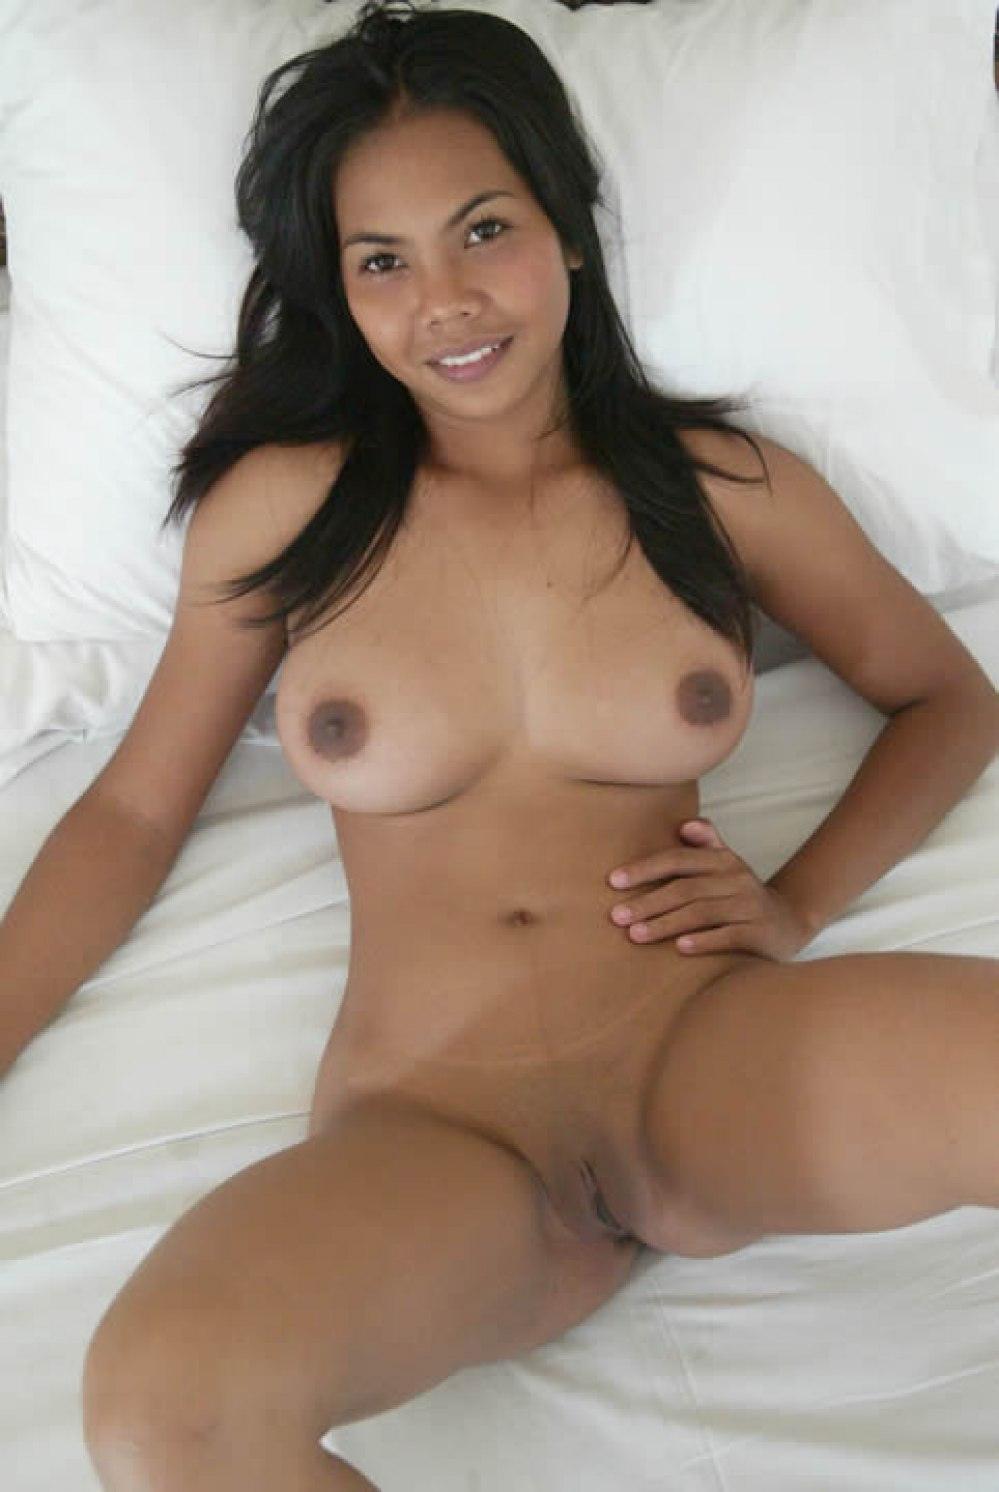 Showing images for thailand creampie xxx